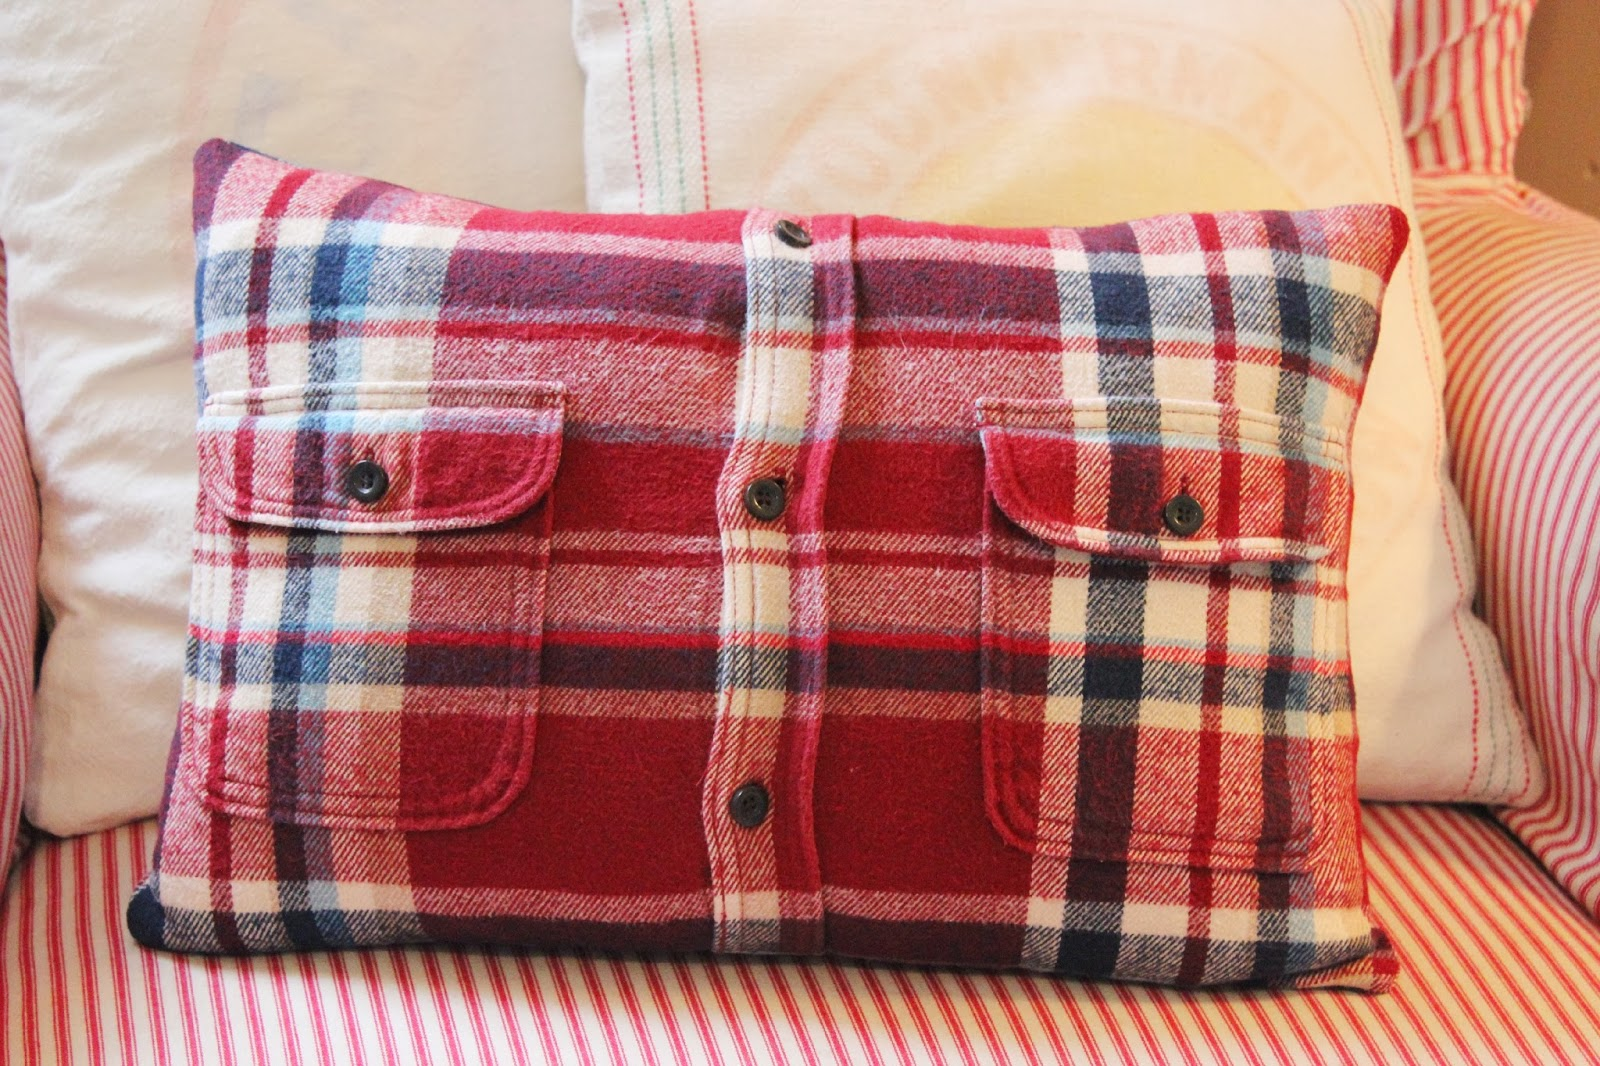 How To Make A Throw Pillow Out Of An Old T Shirt : Happy At Home: From Flannel Shirt to Pillow Cover - A Tutorial